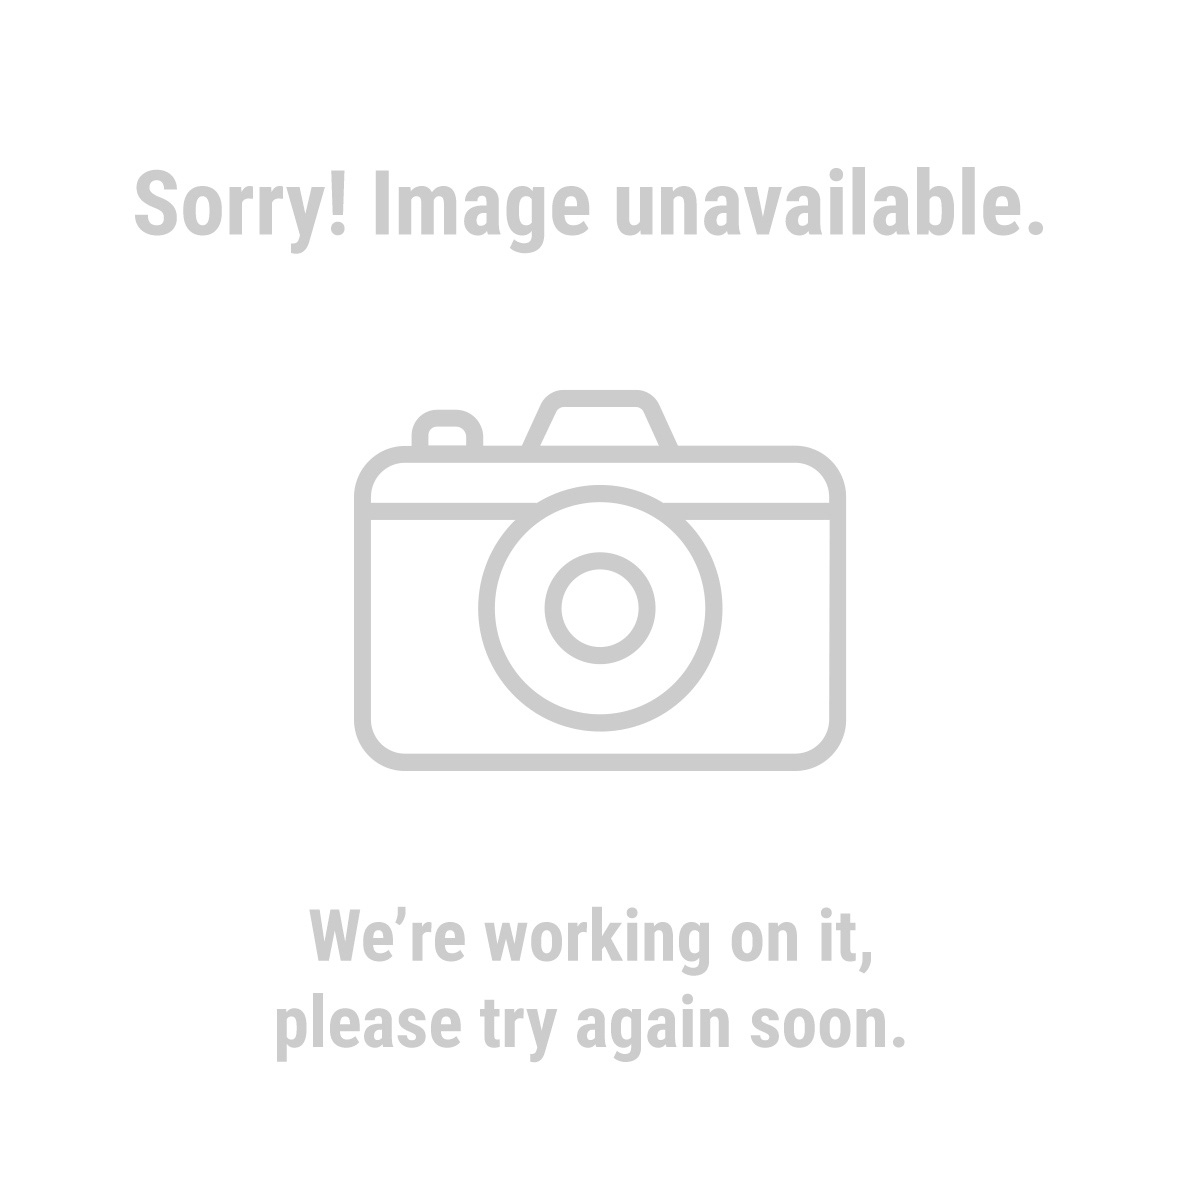 "Harbor Freight Tools 7363 Pack of 15 9"" x 11"" Silicon Carbide Sanding Sheets"